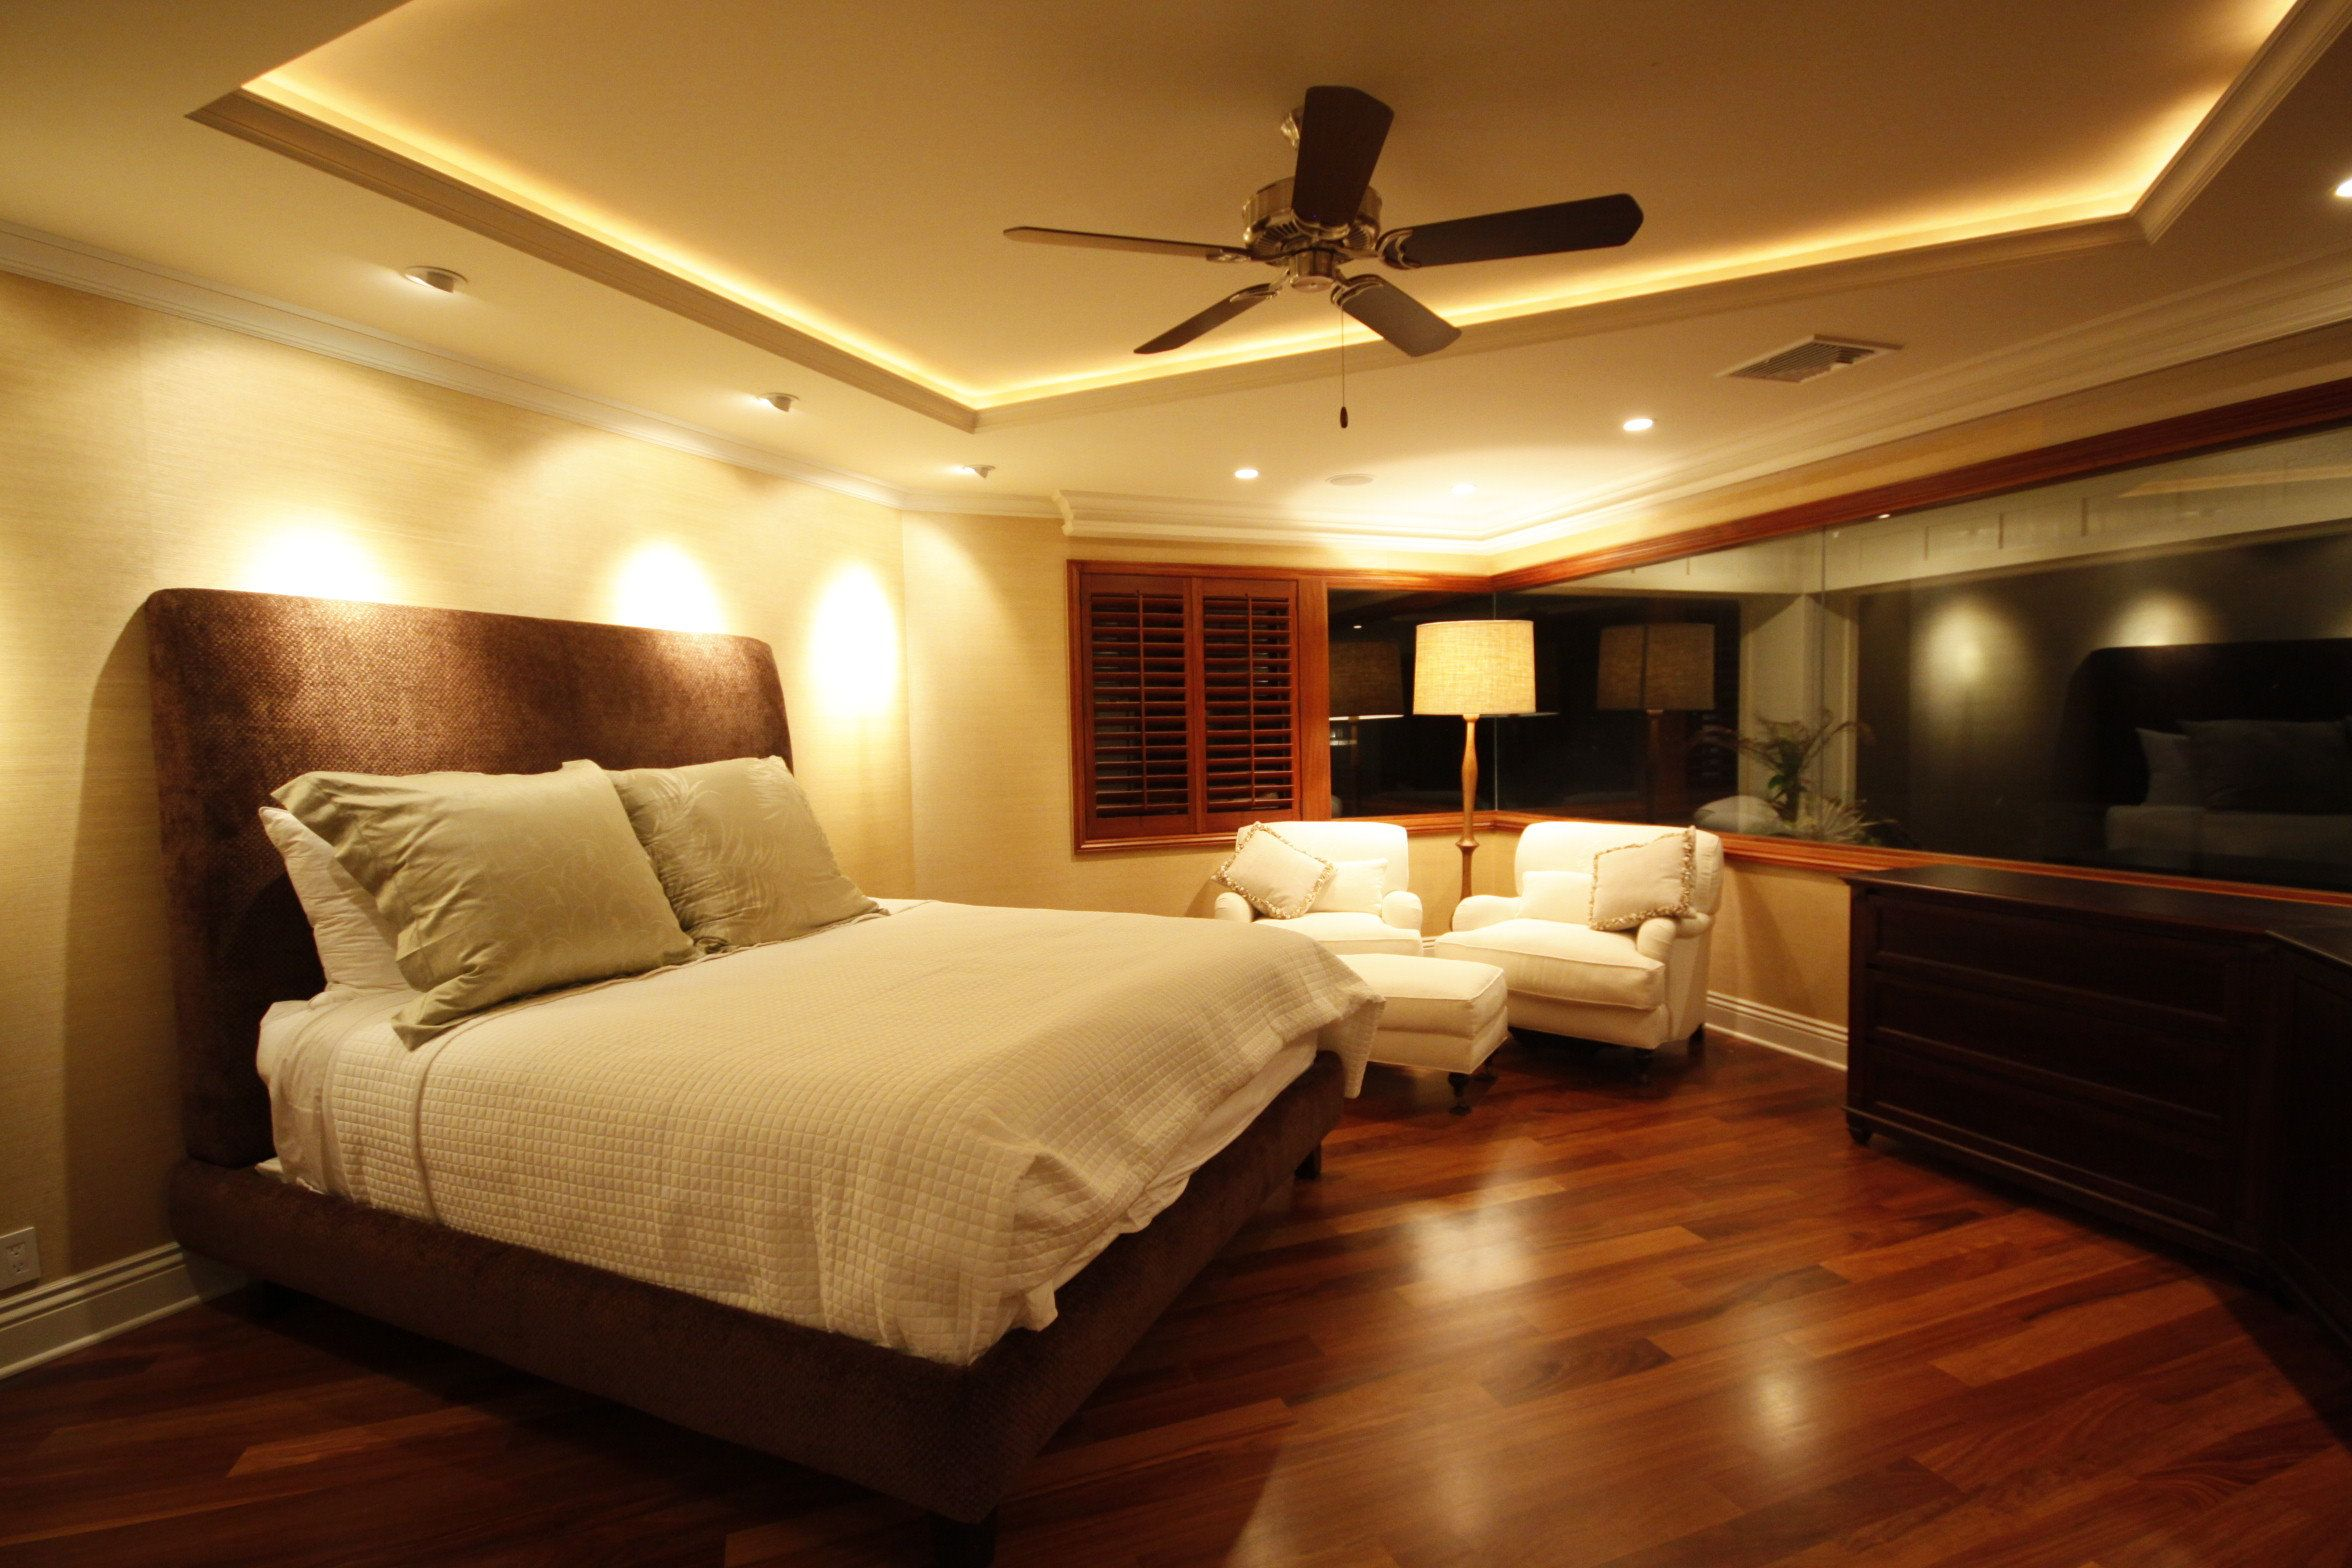 Appealing master bedroom modern decor with wooden floors for Big master bedroom design